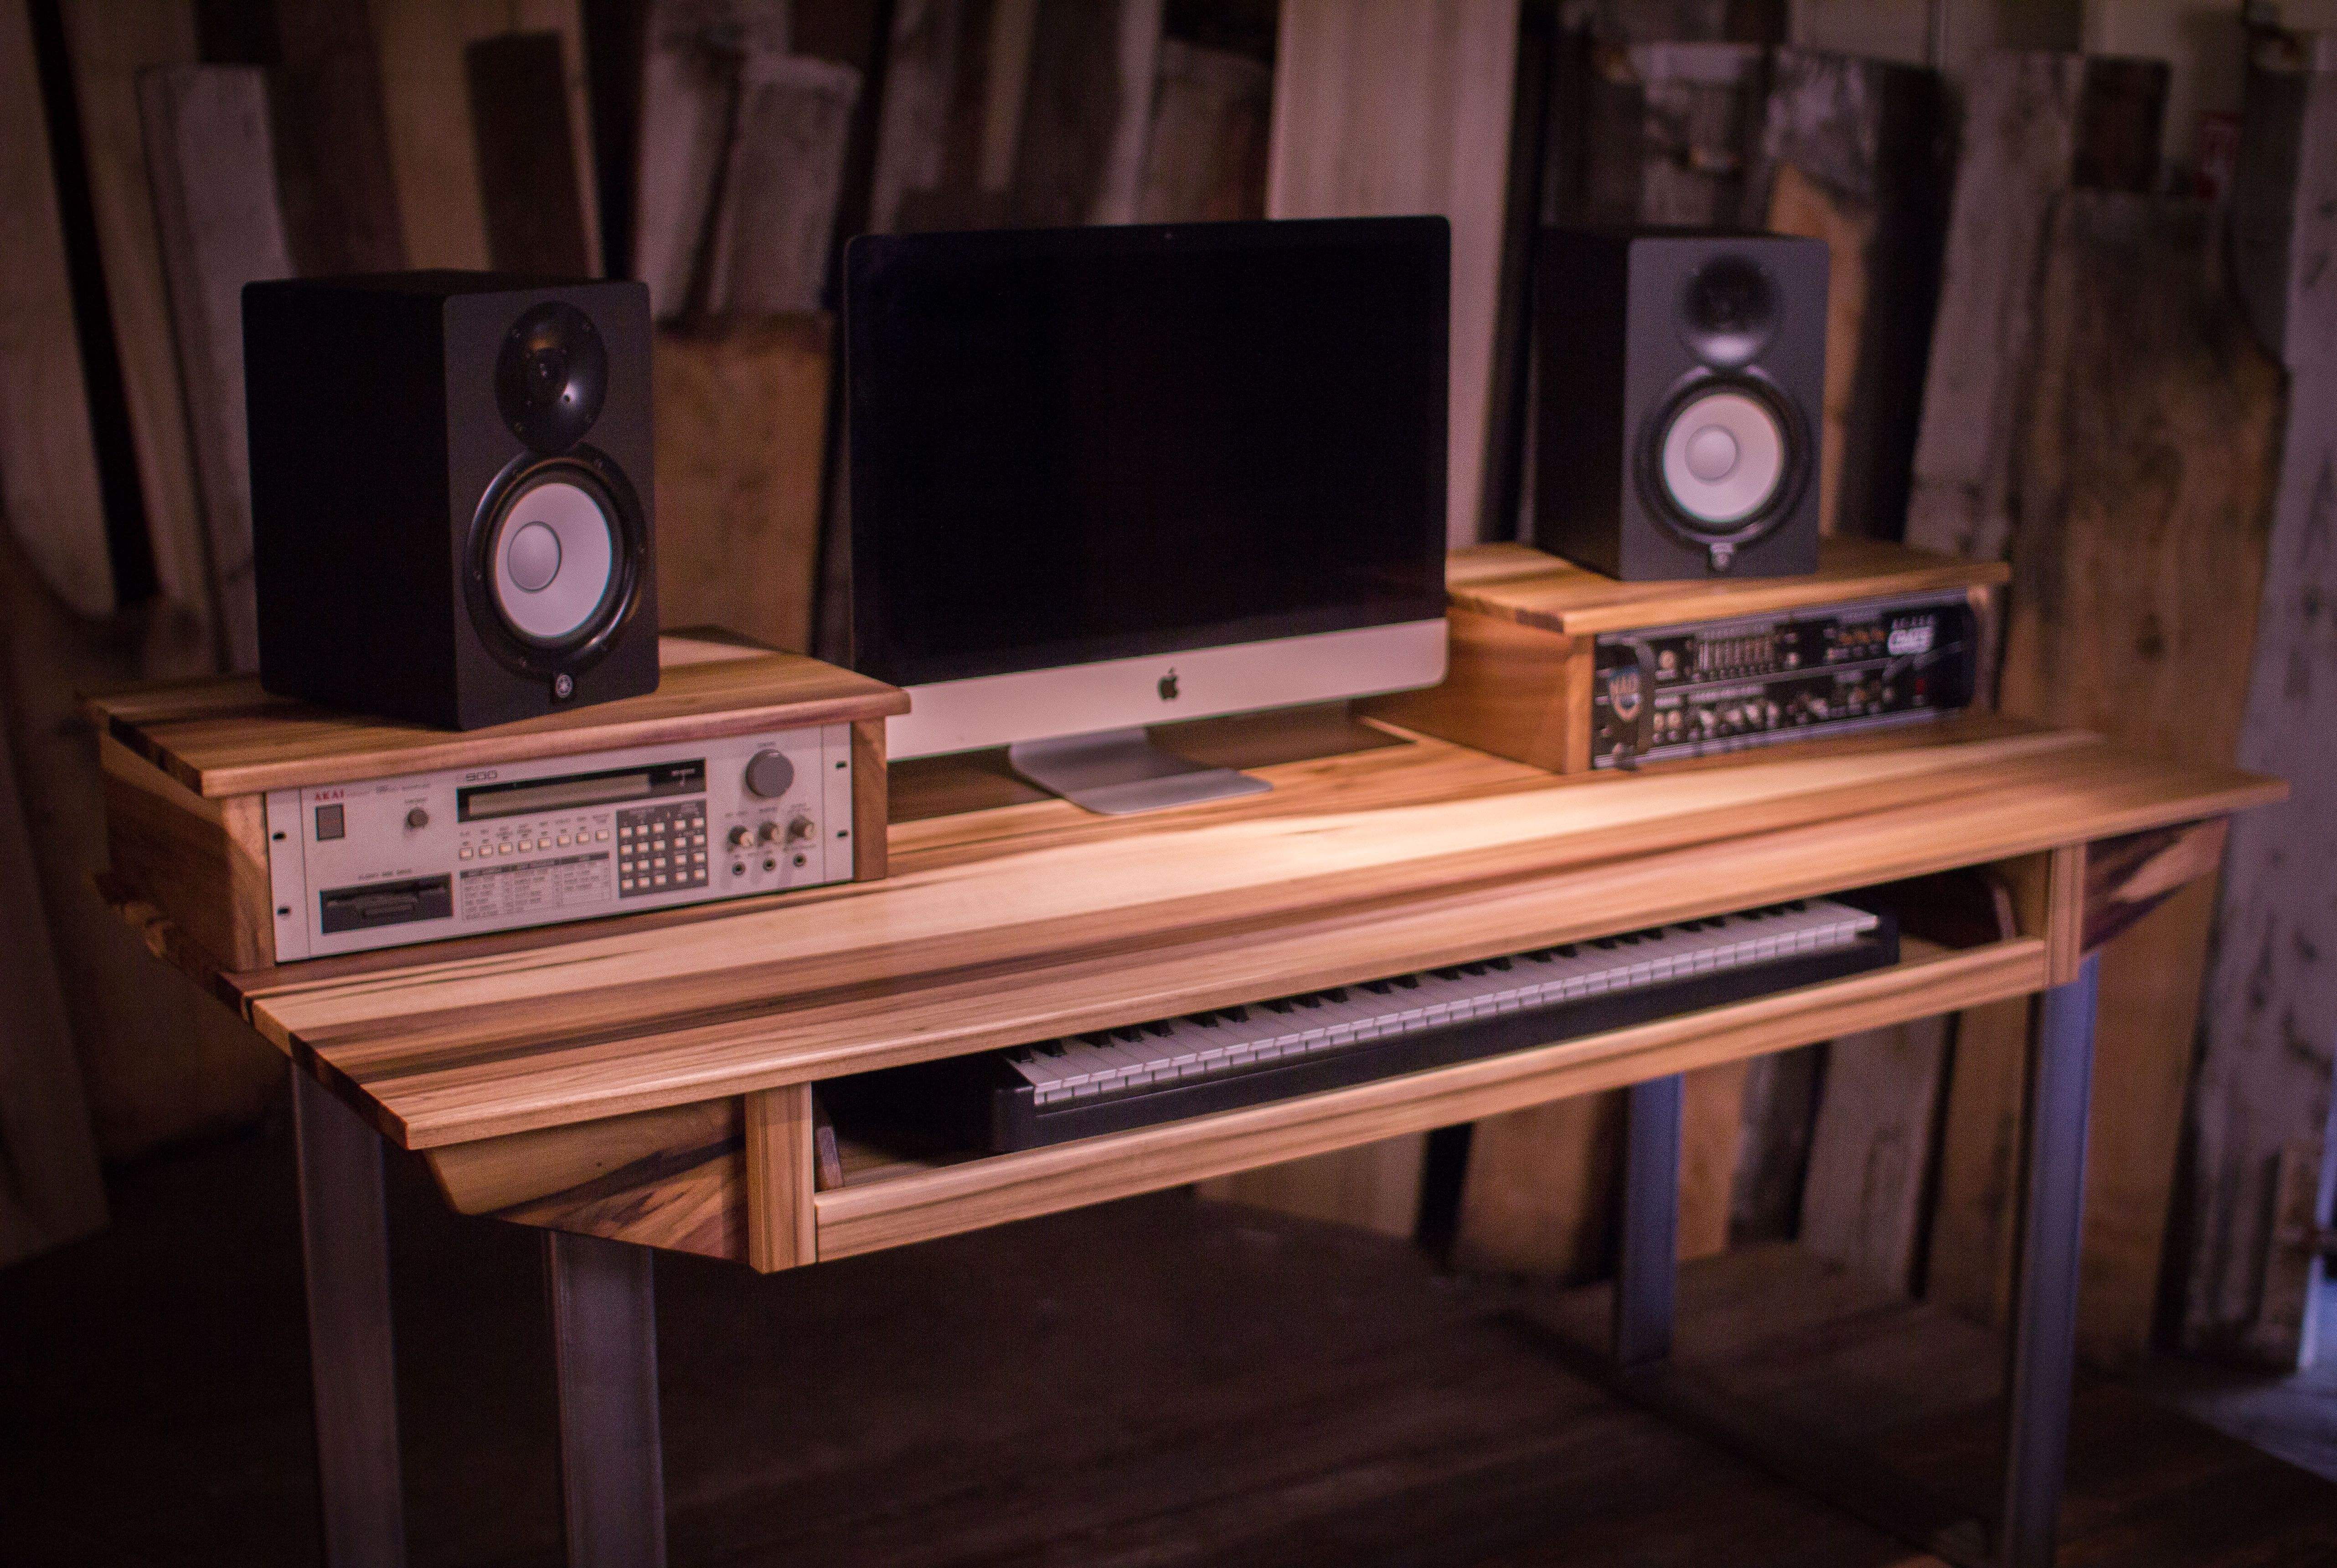 Hand Crafted Studio Desk For Audio Video Production W Keyboard Workstation Shelf And Rack Units By Monkwood Custommade